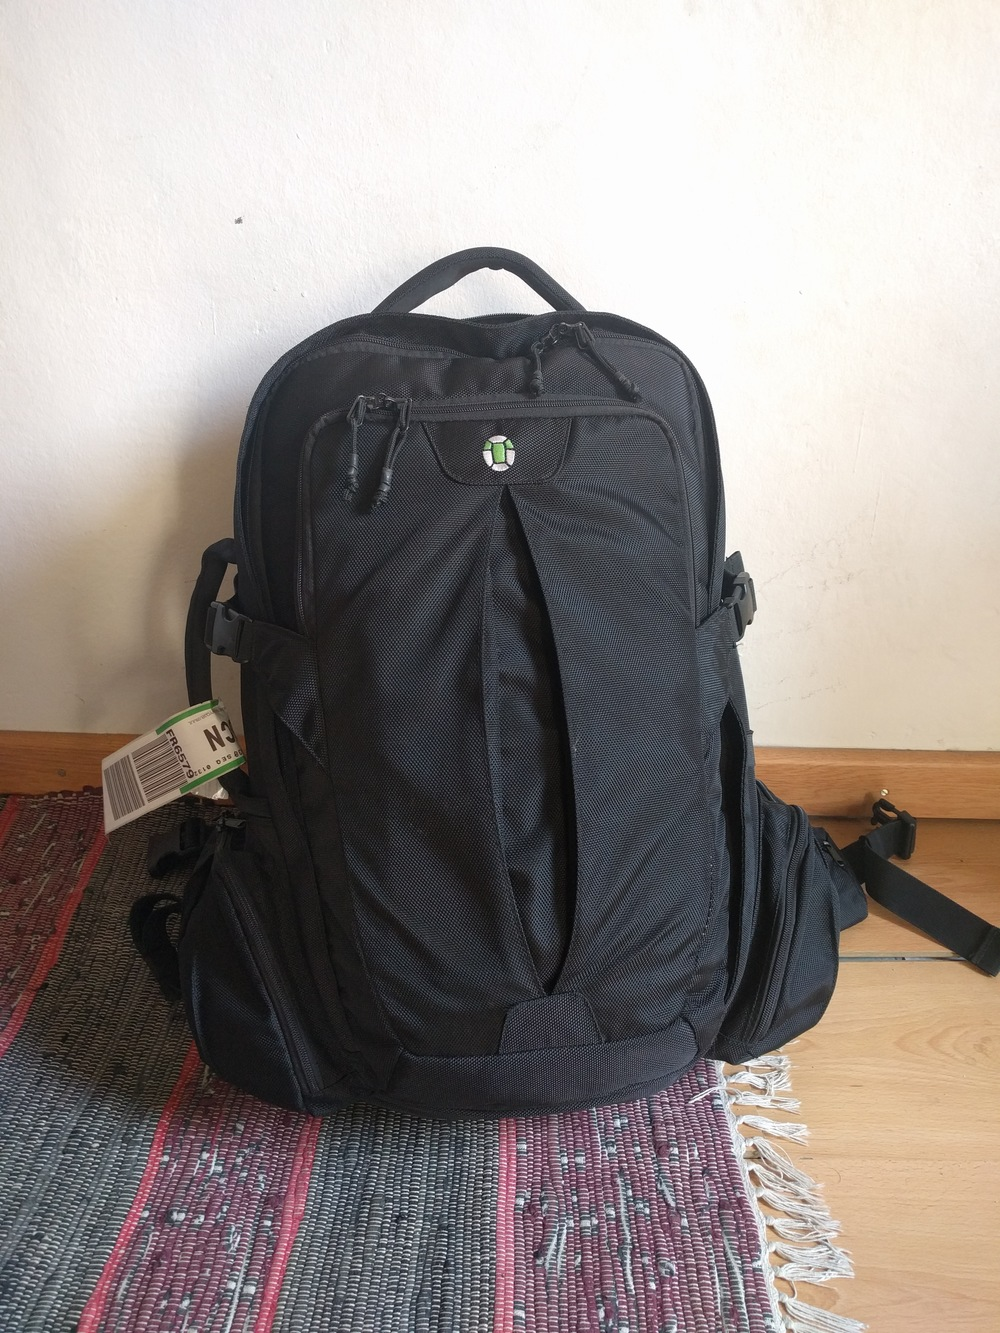 The Tortuga Travel Backpack is designed to make maximum use of the dimensions available for carry-on on most non-discount airlines. This bag will not meet carry-on requirements for Ryan Air, for example.